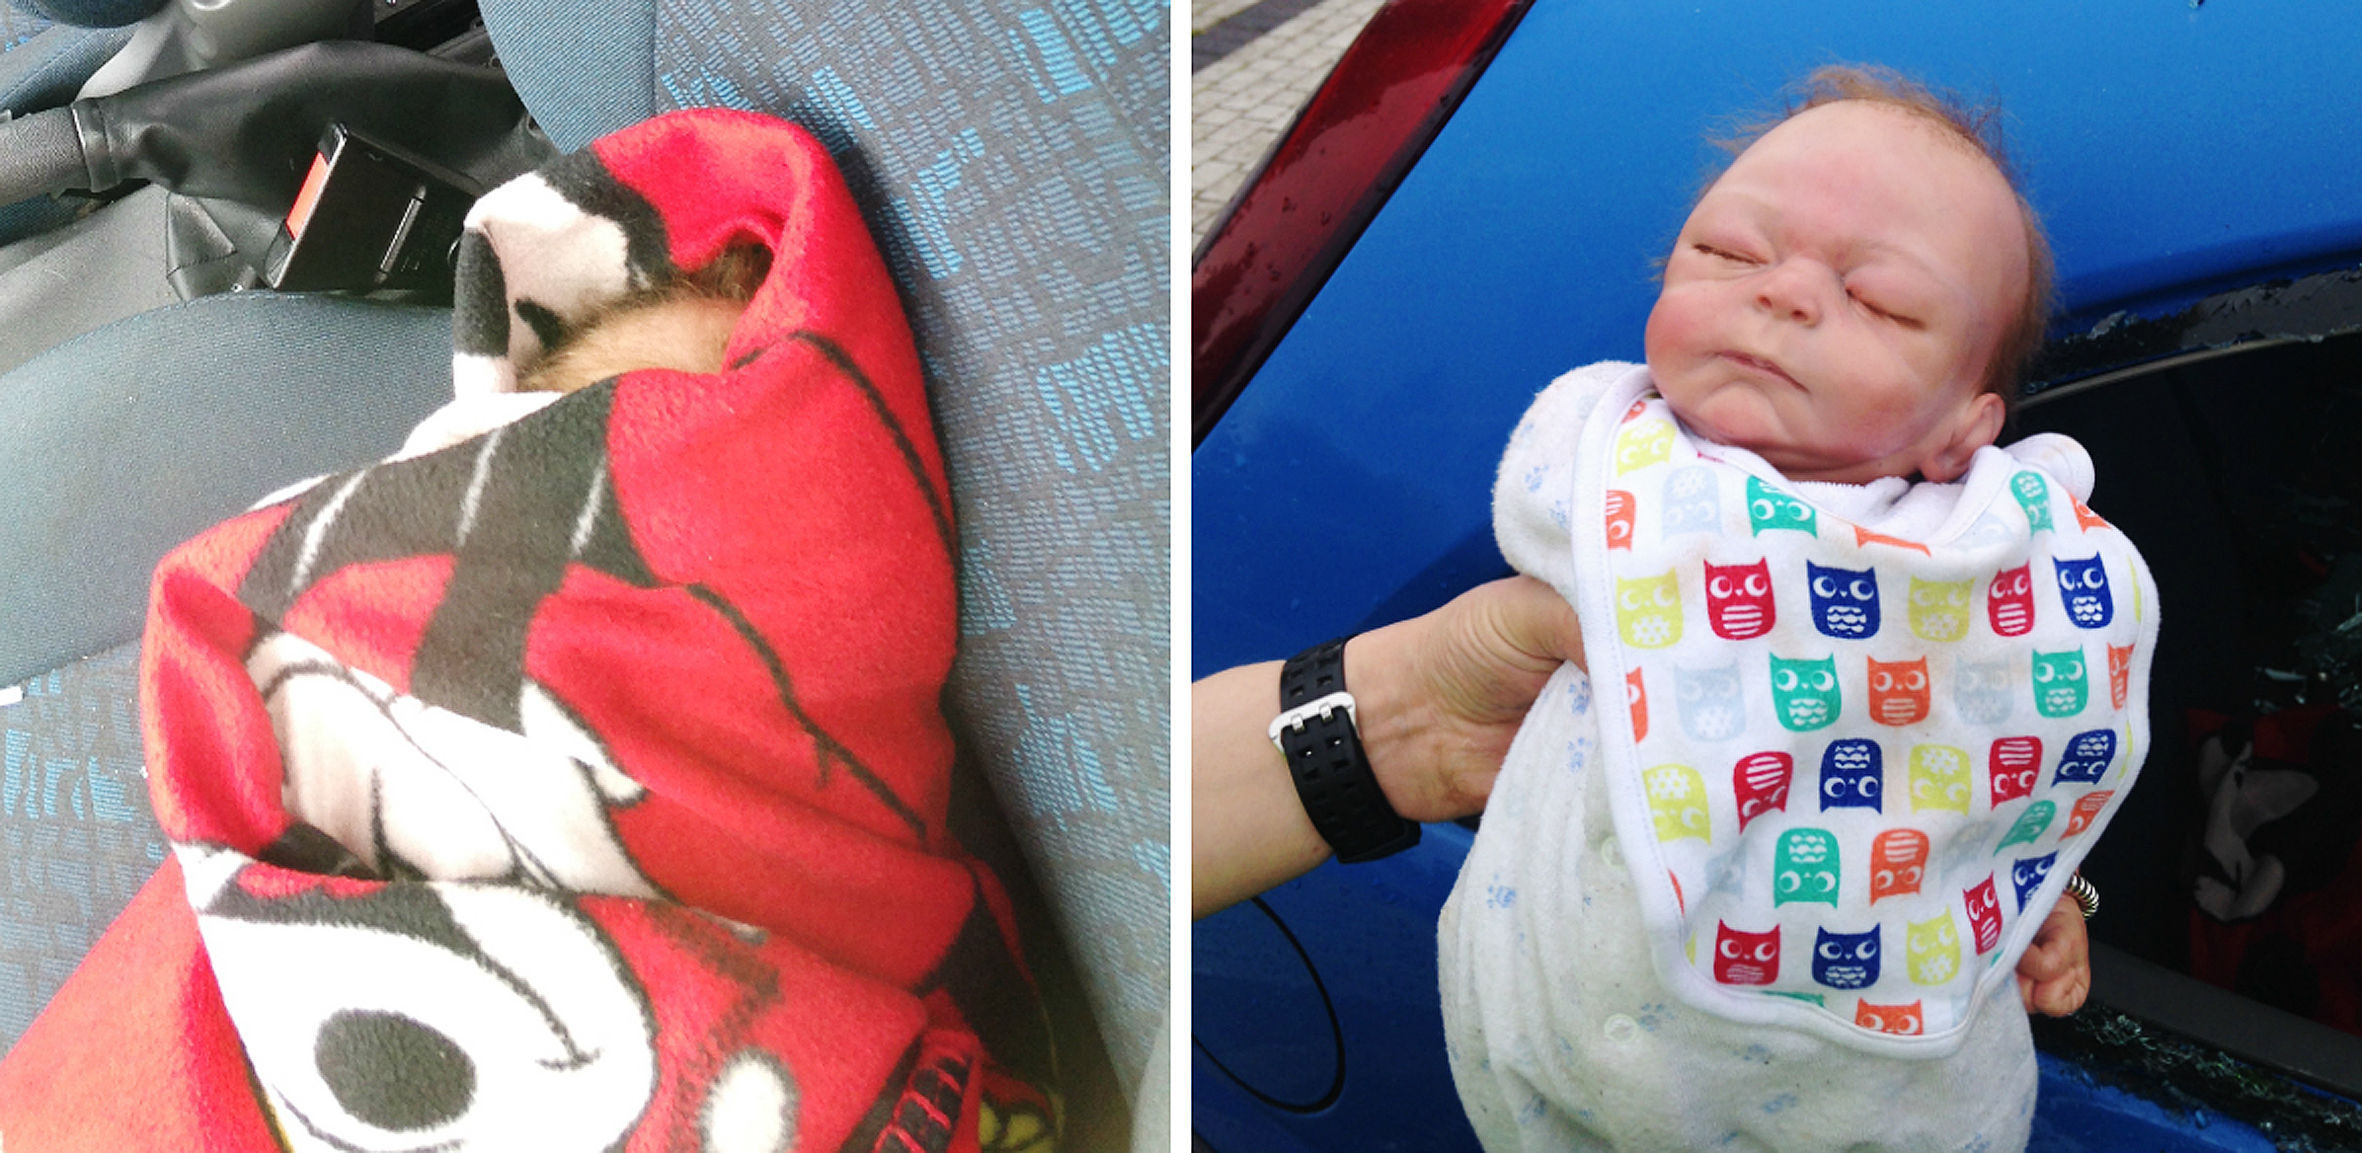 Police broke into a locked car to rescue what the thought was a trapped baby